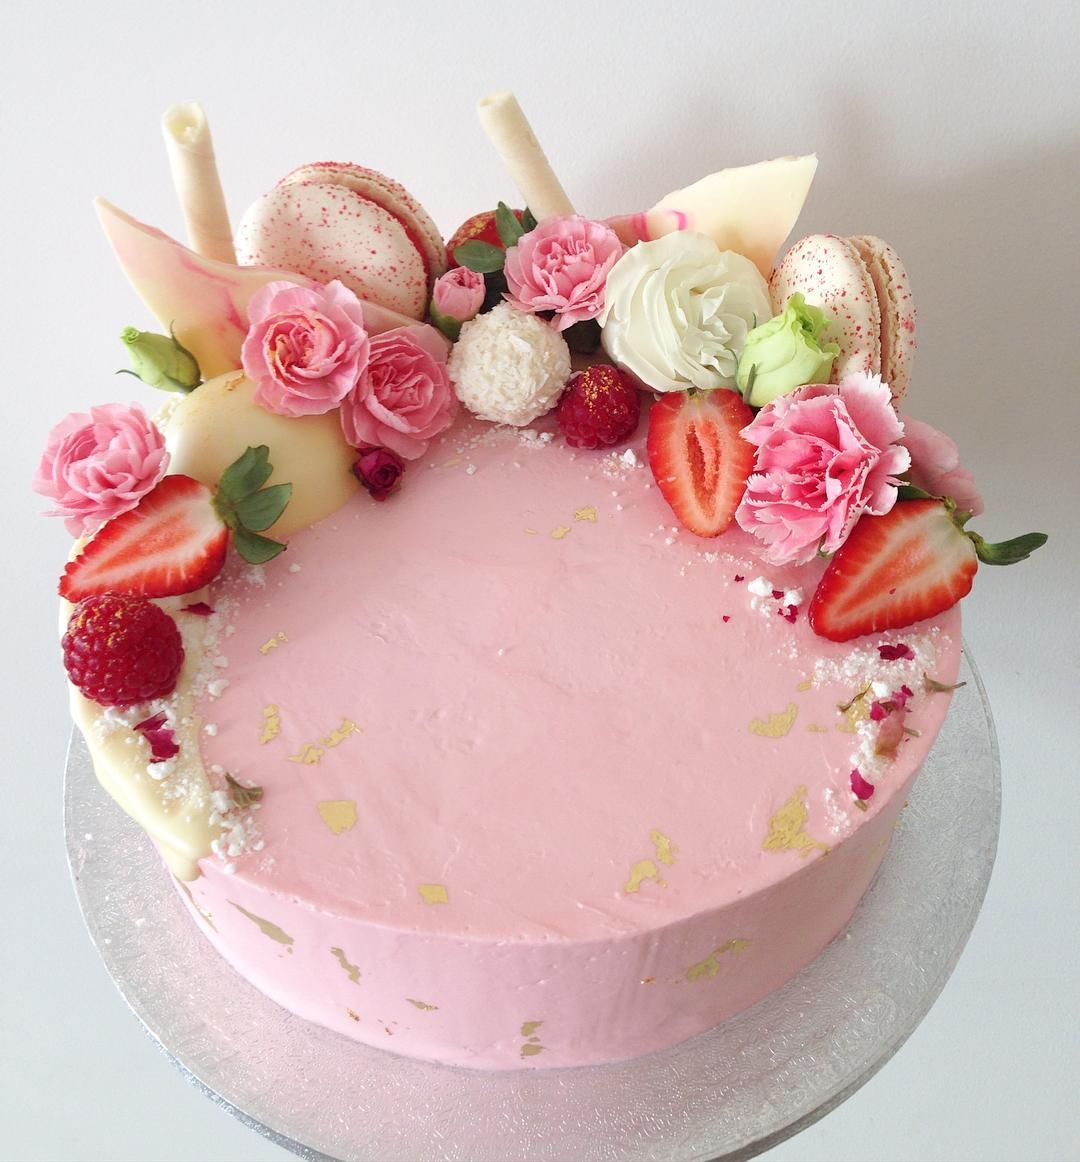 He Request Was Pink Coconut Raspberry Cake With Coconut